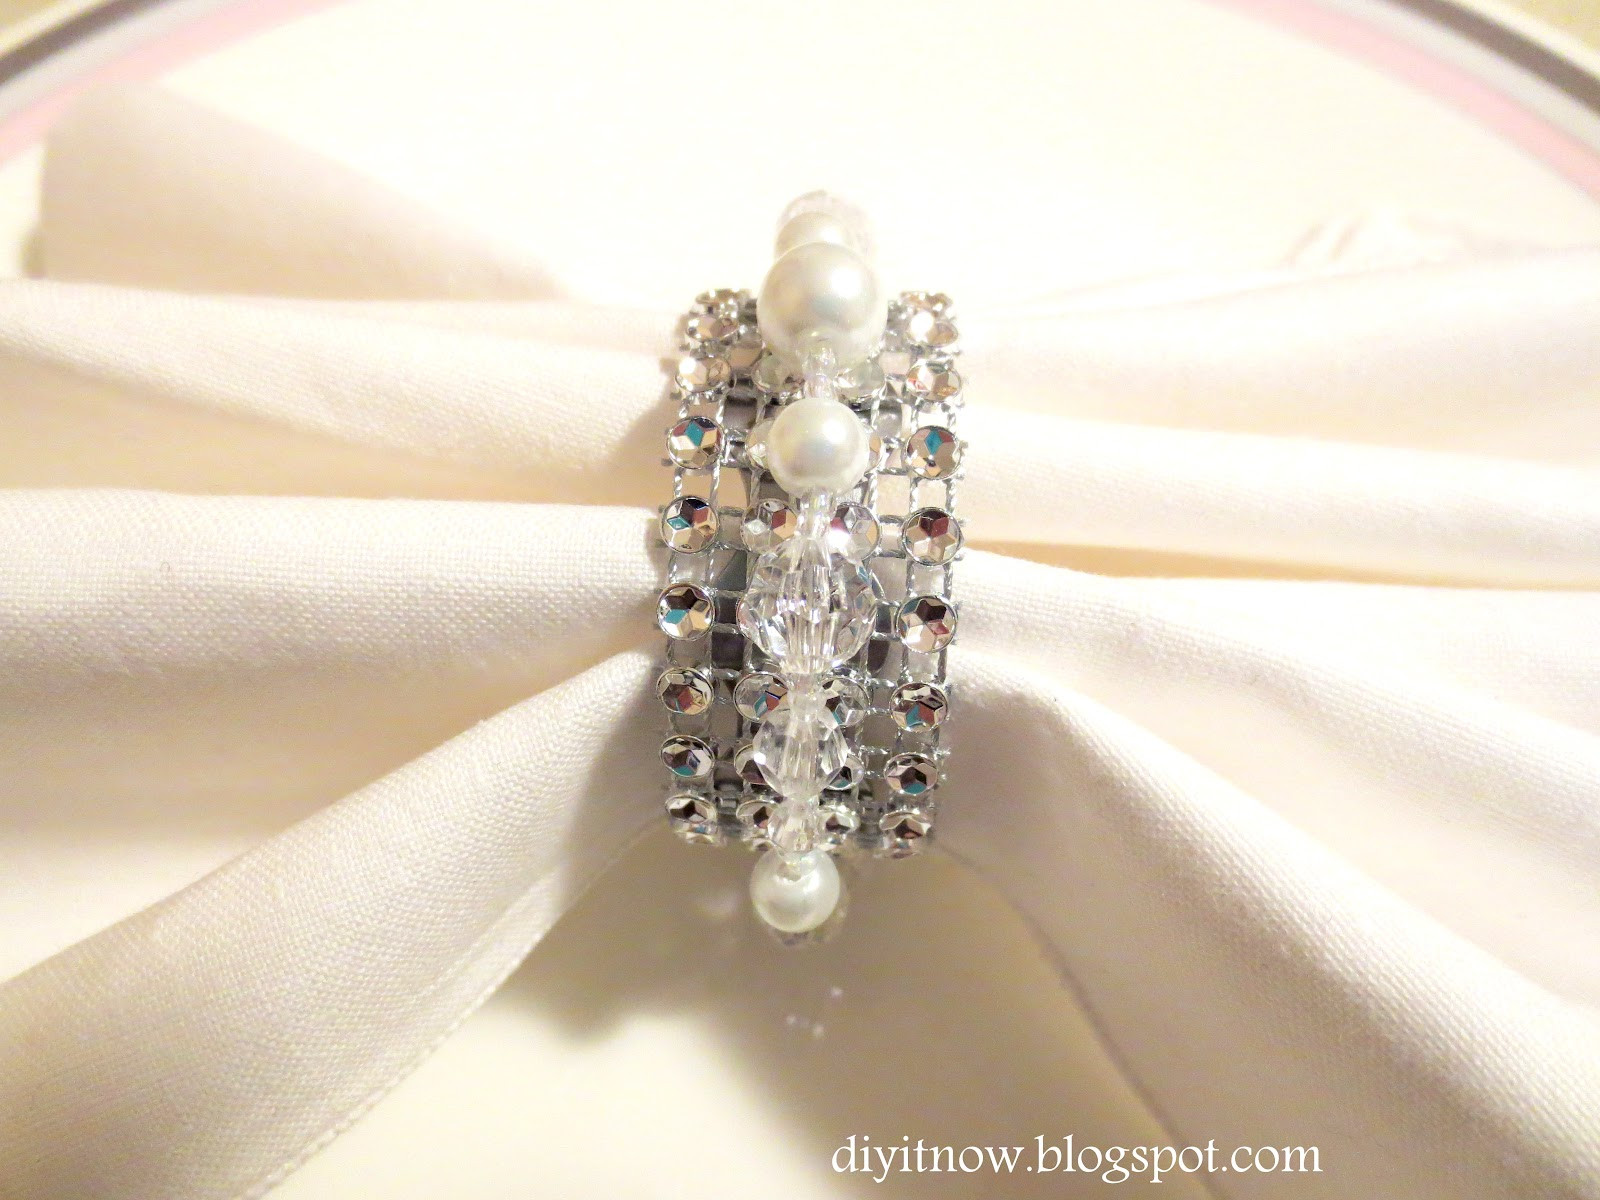 Best ideas about DIY Napkin Rings For Weddings . Save or Pin DIY it Now DIY TUTORIAL NAPKIN RINGS Now.